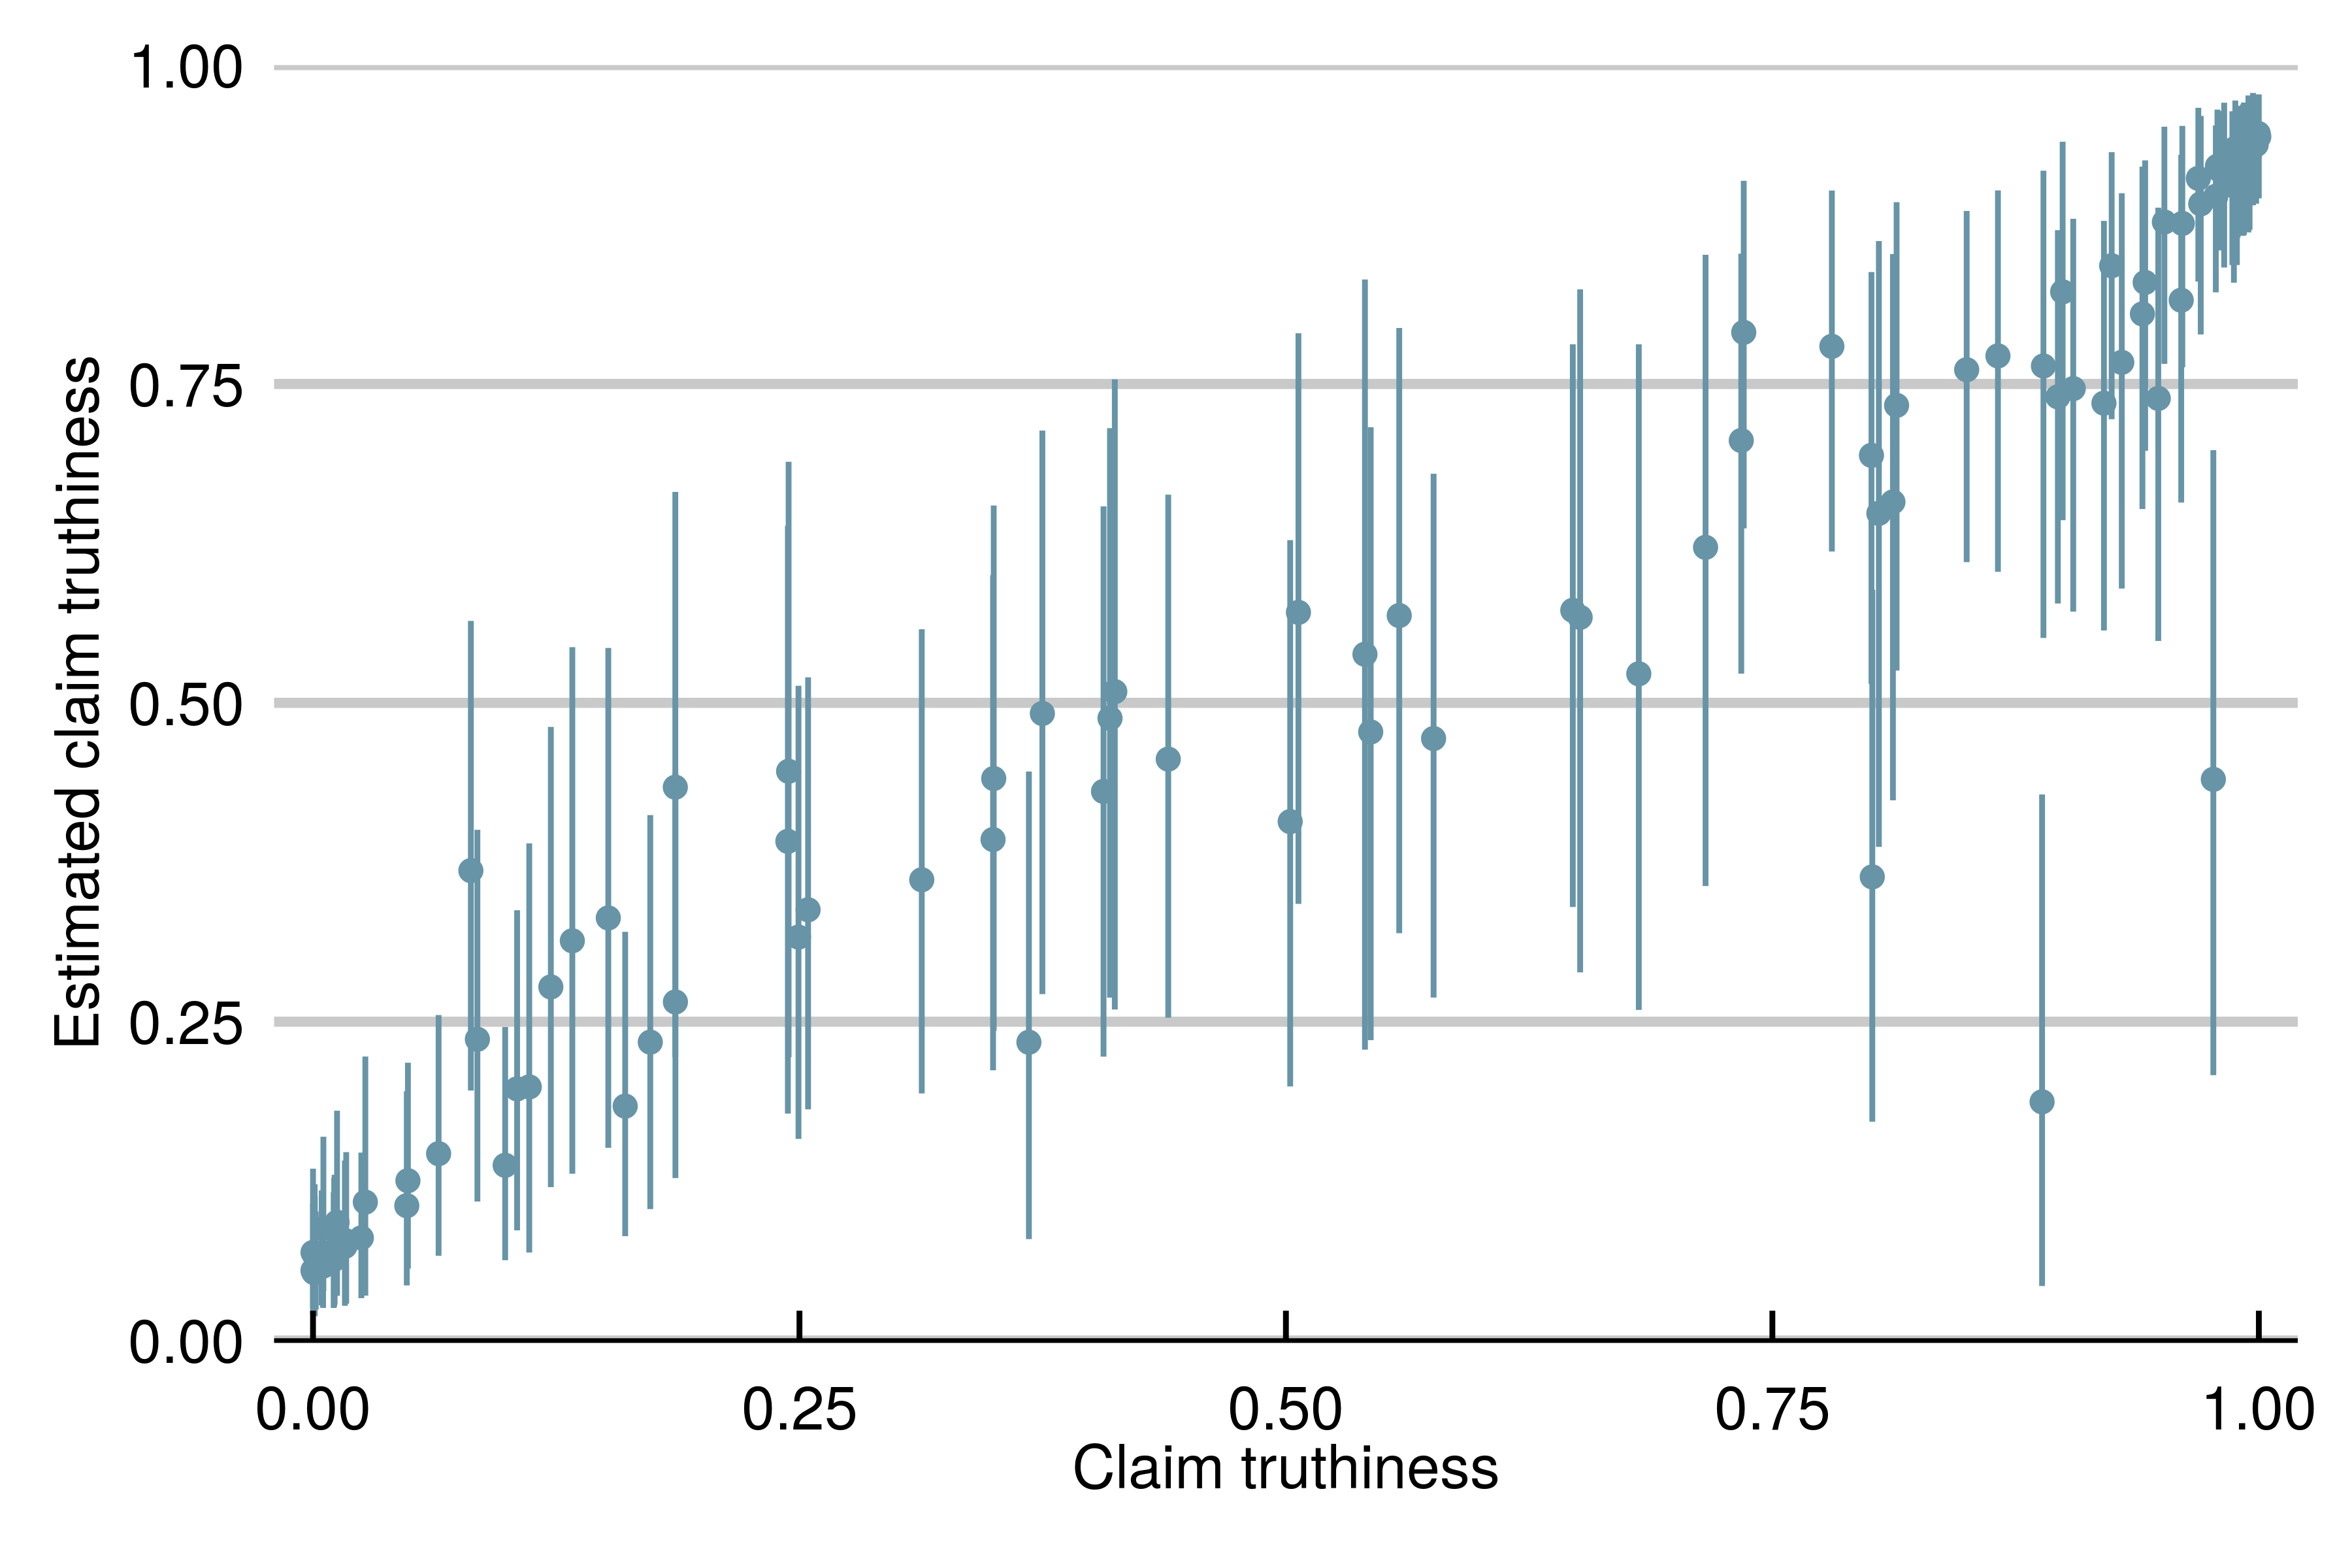 Estimated truthiness of simulated claims